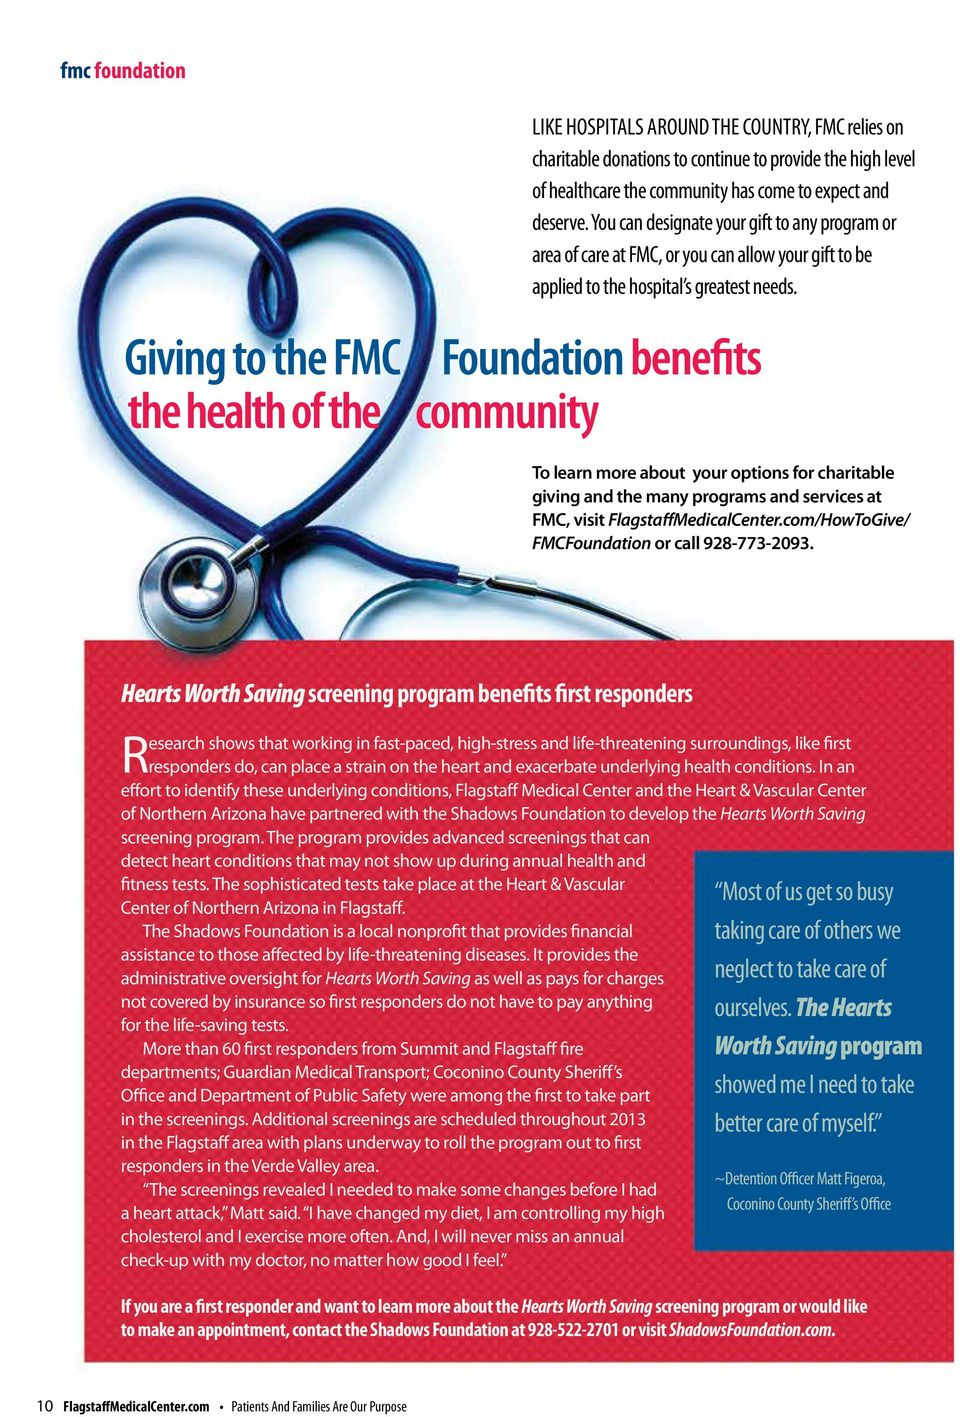 Foundation benefits community To learn more about your options for charitable giving and the many programs and services at FMC, visit FlagstaffMedicalCenter.